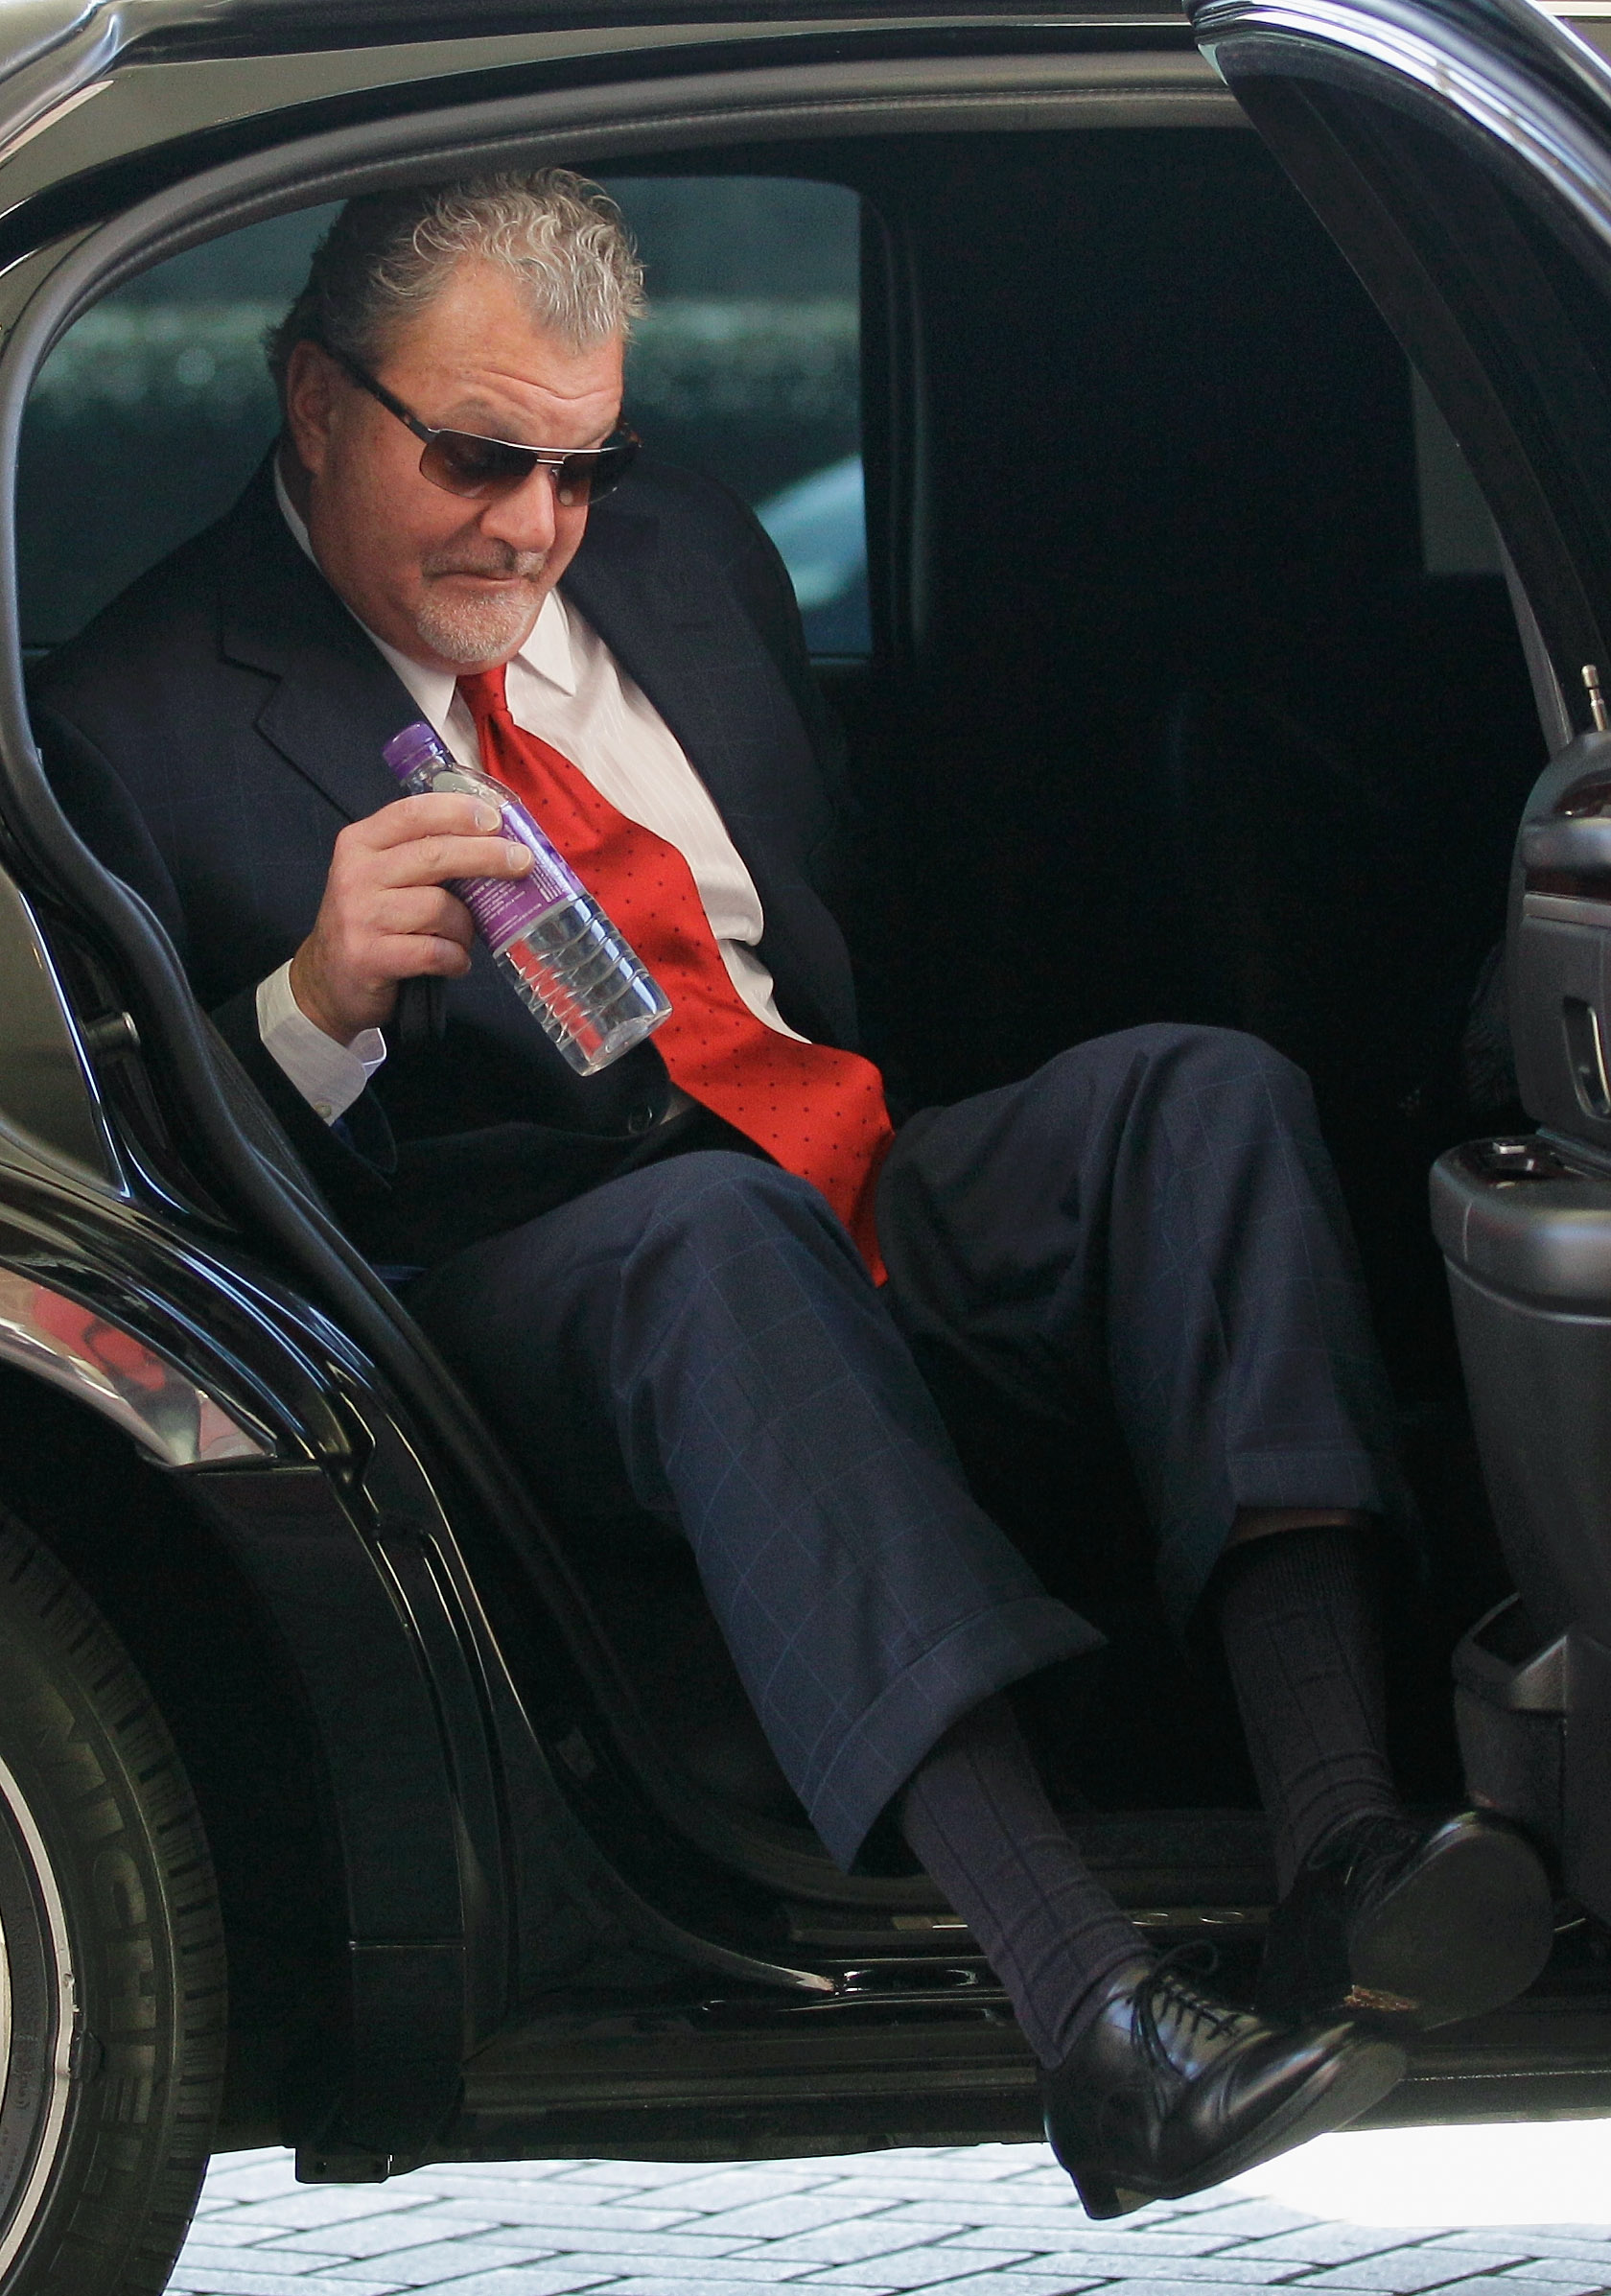 CHANTILLY, VA - MARCH 02: Indianapolis Colts owner Jim Irsay exits a car after arriving for a meeting of NFL owners at a hotel on March 2, 2011 in Chantilly, Virginia. The NFL owners are meeting in Chantilly to discuss negotiations with the players union